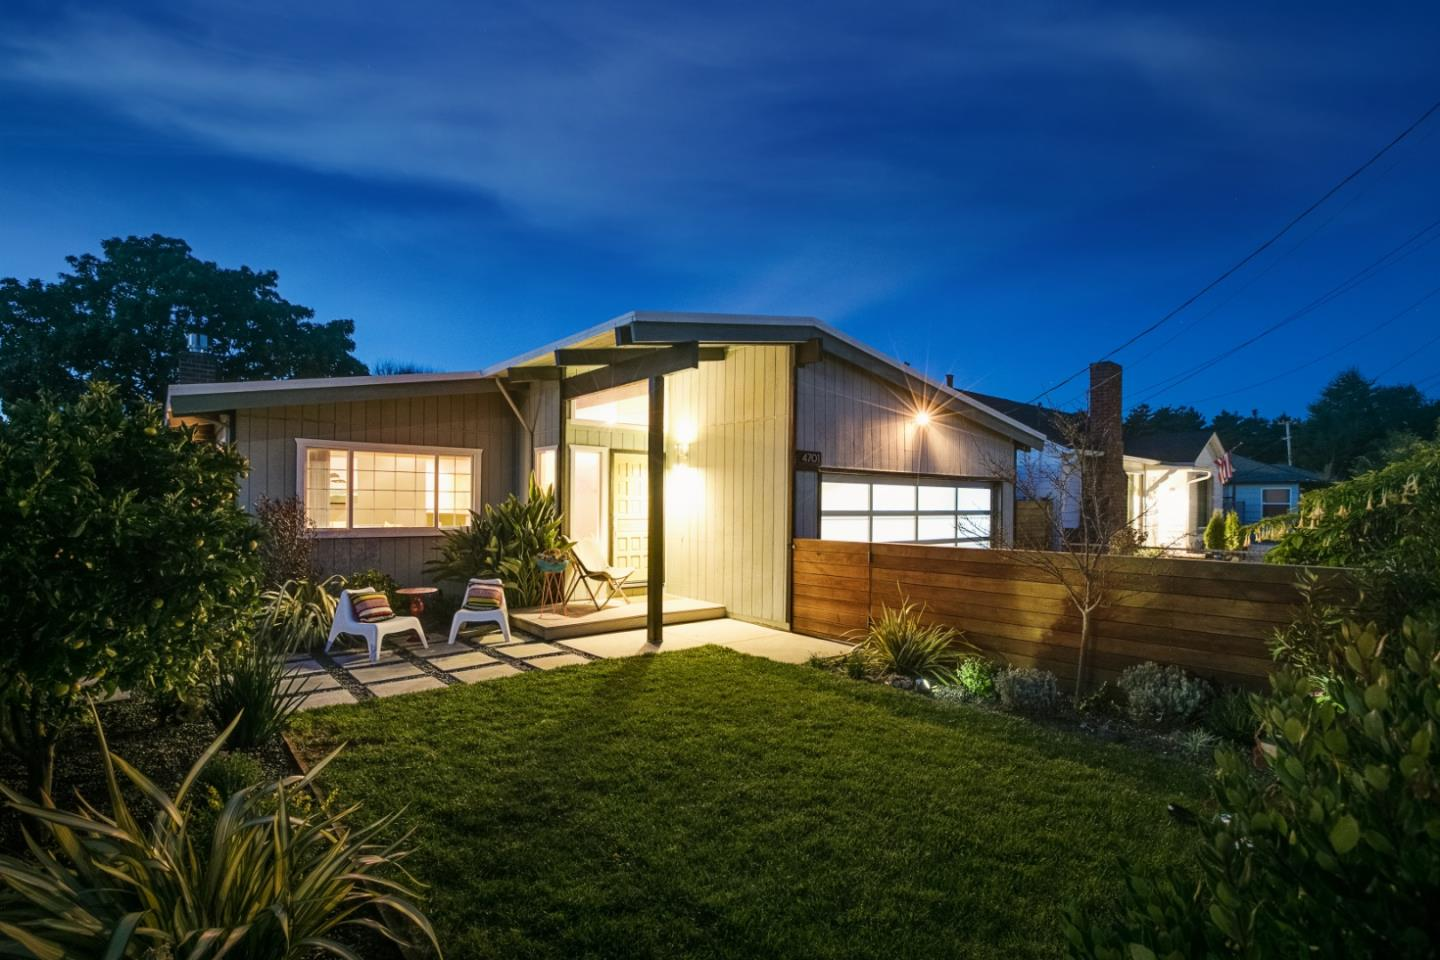 This attractive and modern home is in the coveted Opal Cliffs neighborhood, just a short stroll or bike ride to the best beaches of Capitola and the Pleasure Point area. Also close to a growing number of hip coffee shops, restaurants, tap rooms and all the conveniences of 41st Avenue. This desirable, single level home is artist inspired with mid-century touches throughout. The open concept living area features a modern gas fireplace insert, hardwood floors and a vaulted, exposed beam ceiling. Other upgrades include granite counters, maple cabinets, stainless steel appliances, double pane windows, nest security camera and thermostat, recessed lighting, contemporary garage door and much more. Outdoor living is outstanding as well with a south facing, professionally designed yard, custom fencing, avocado and orange trees, and an outdoor surfer shower. There is also parking for oversized vehicles, and a large two car garage with high ceilings with room for a workshop and all your toys.